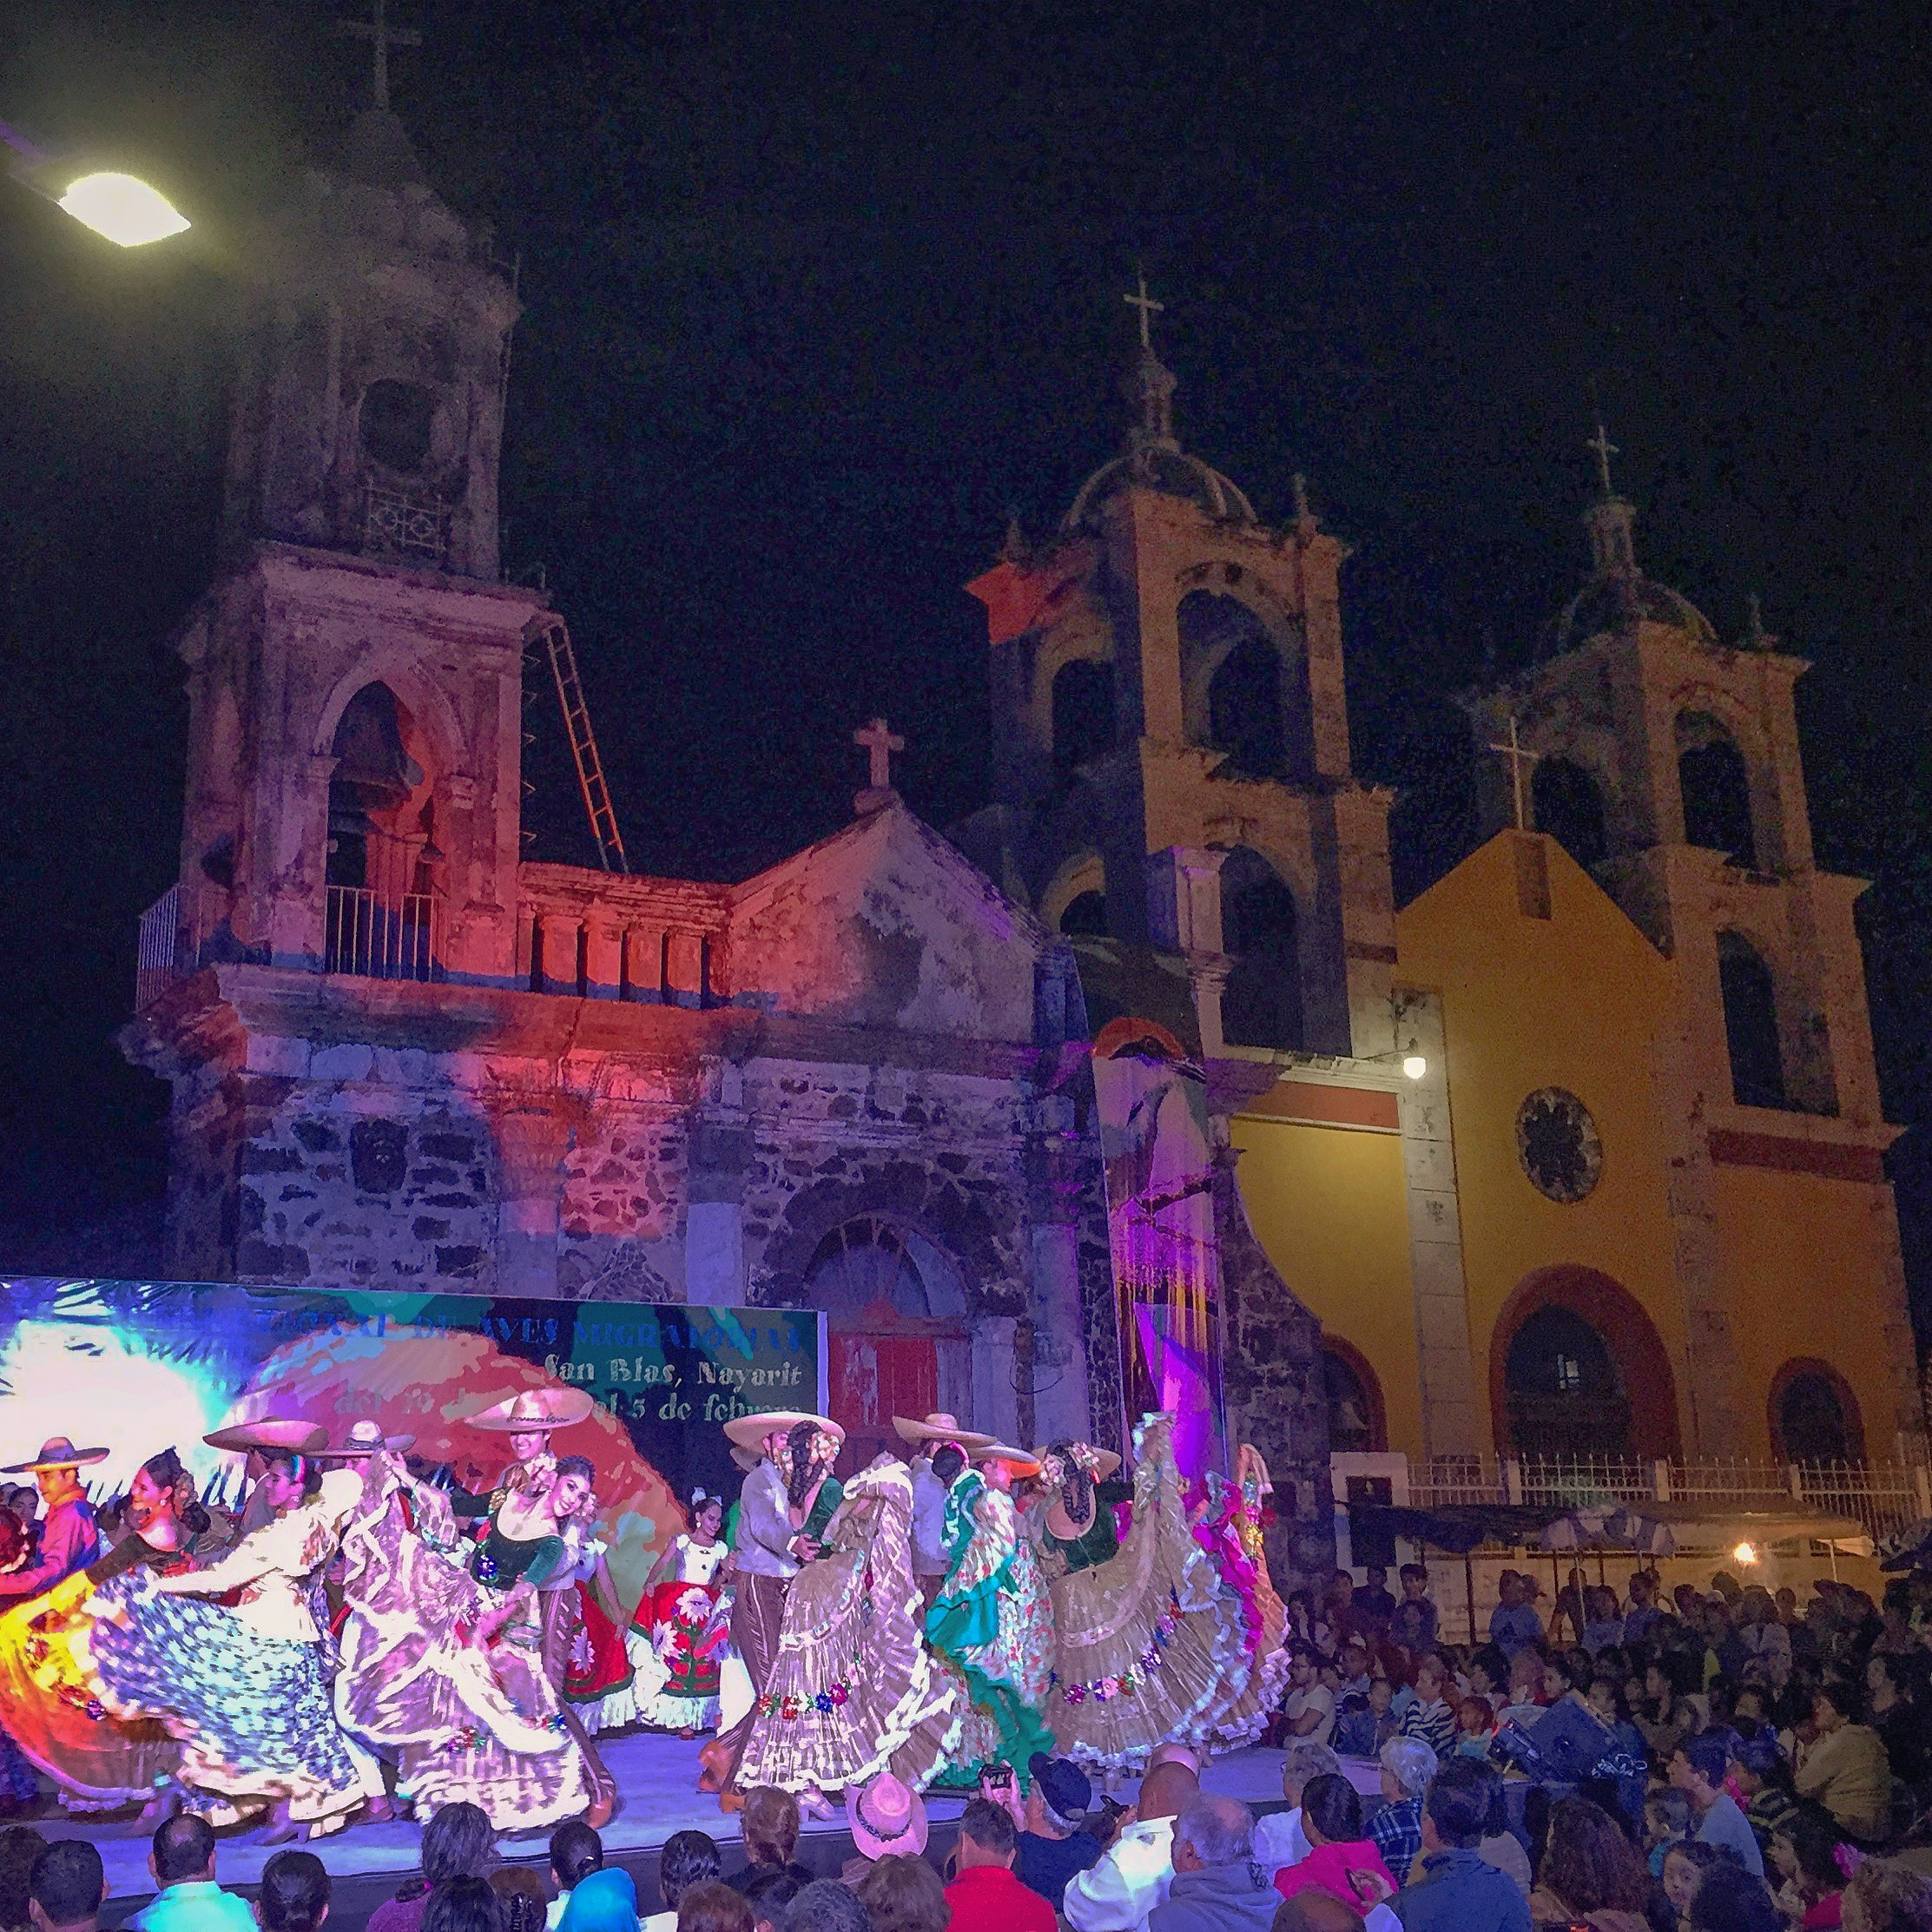 Festival in the town square celebrating the annual bird migration.